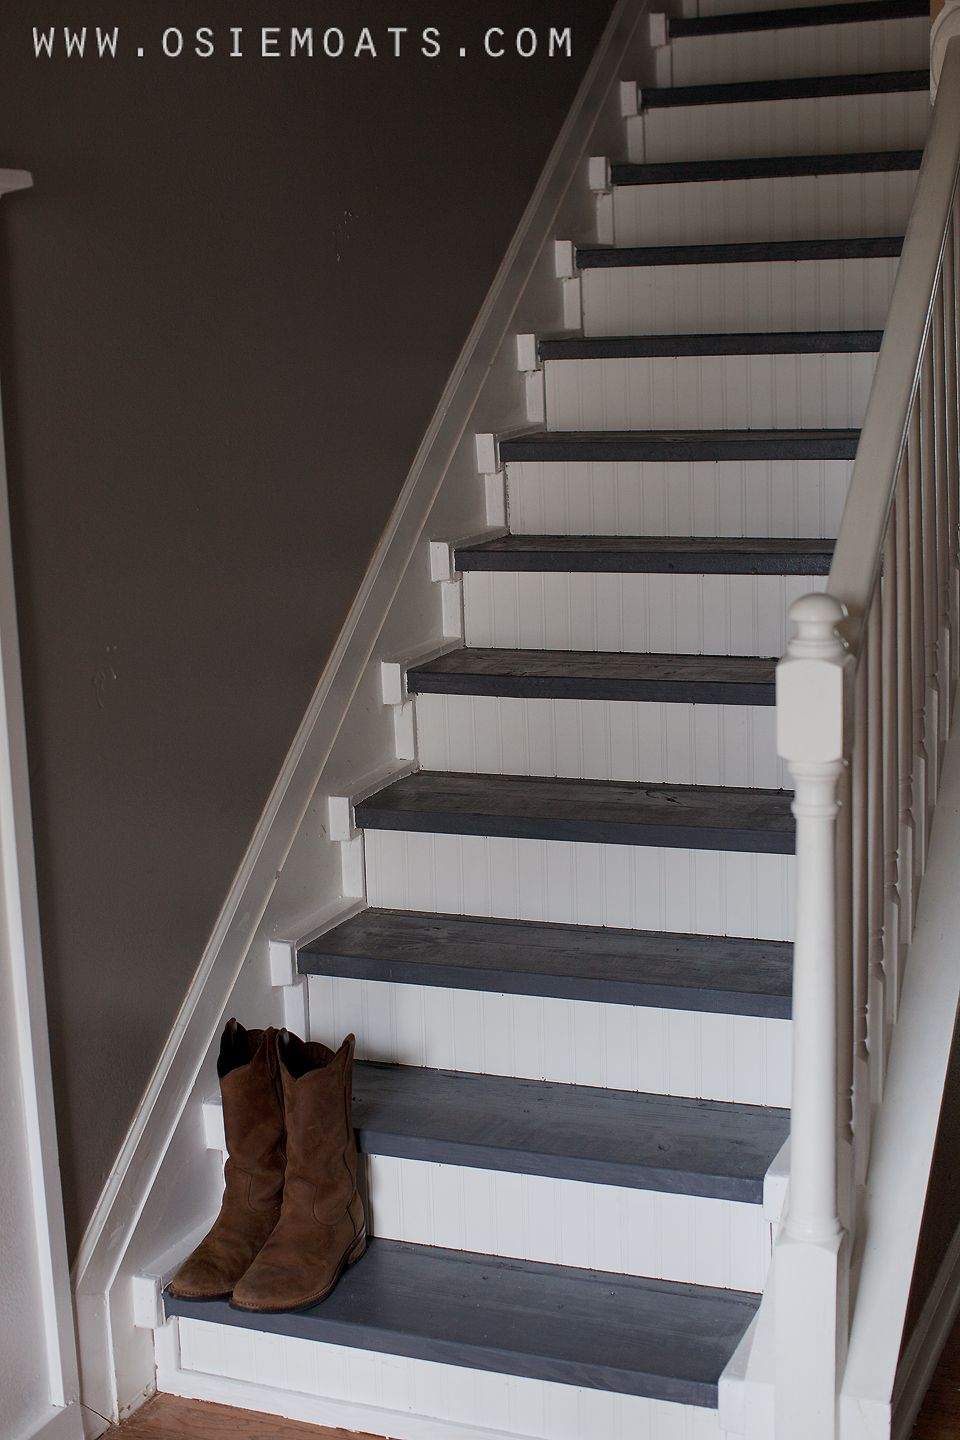 Osie Moats Diy Lifestyle Decorating Blog Diy 50 Stair